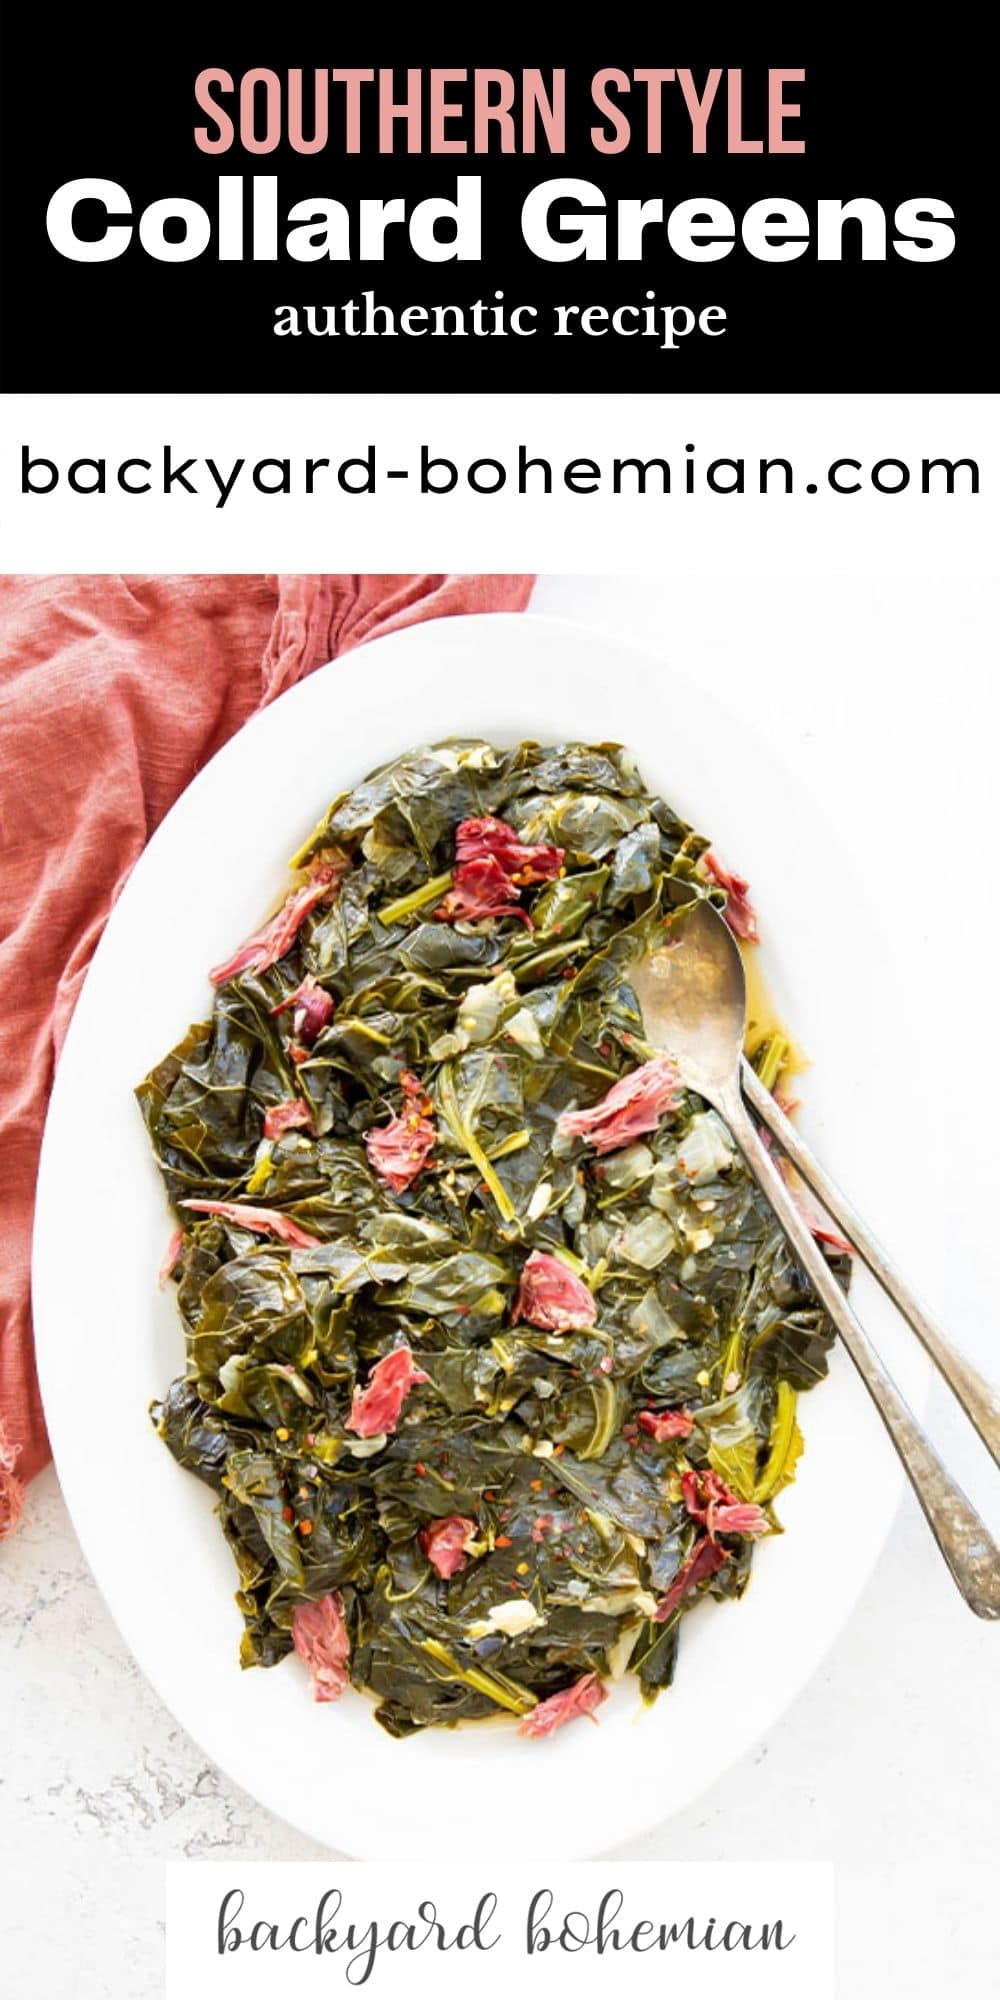 Southern style collard greens are simmered for hours with smoked turkey necks and loads of seasoning to provide the most velvety, decadent greens you've ever had! This is a true southern recipe that has been passed down for generations! via @foodhussy